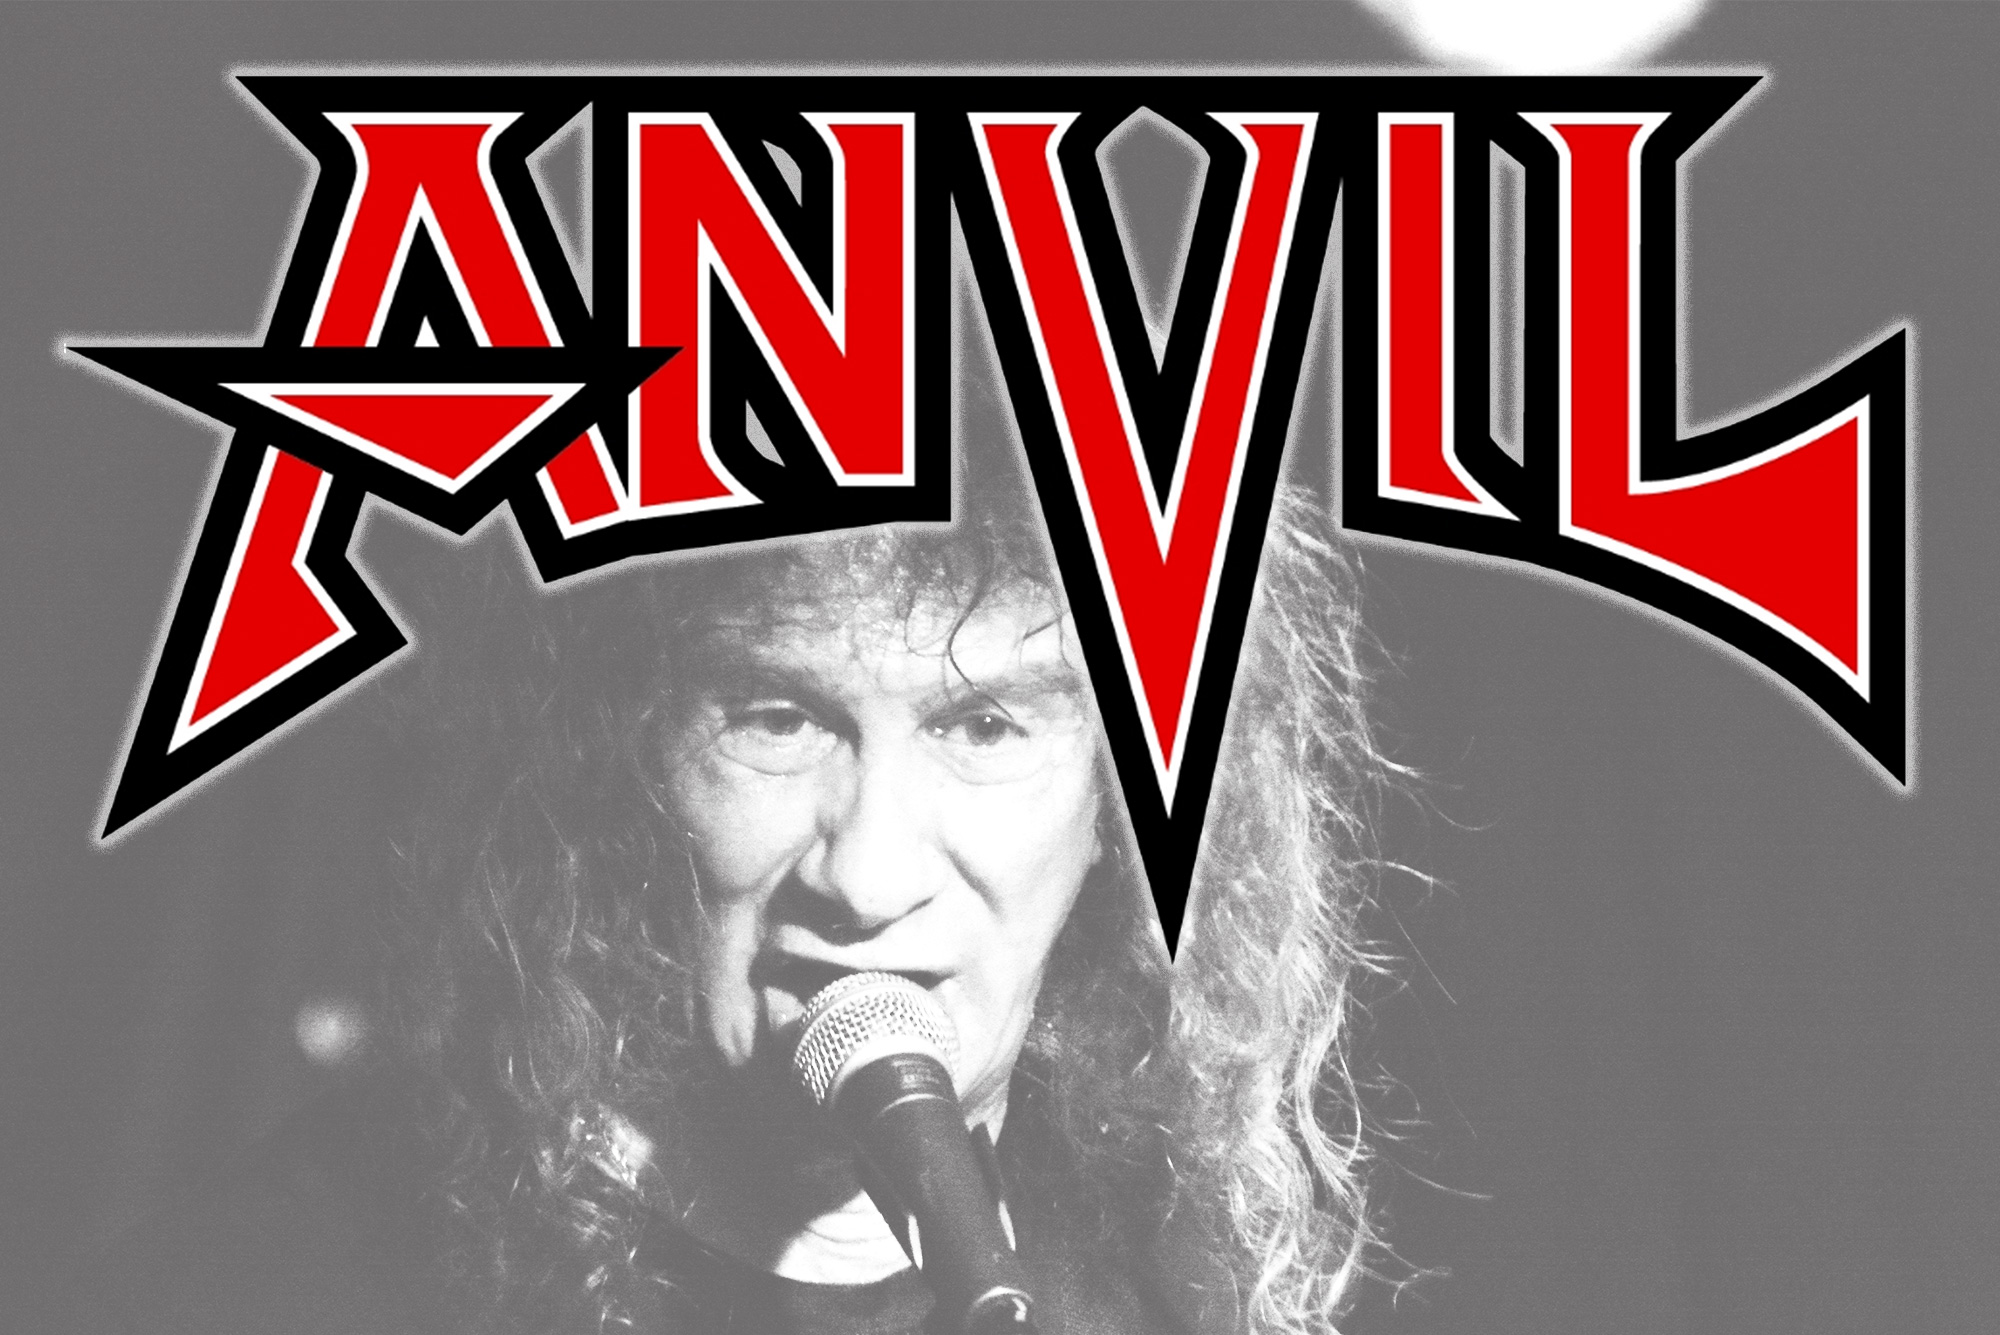 Lips (Anvil) goes Legend – A very personal interview